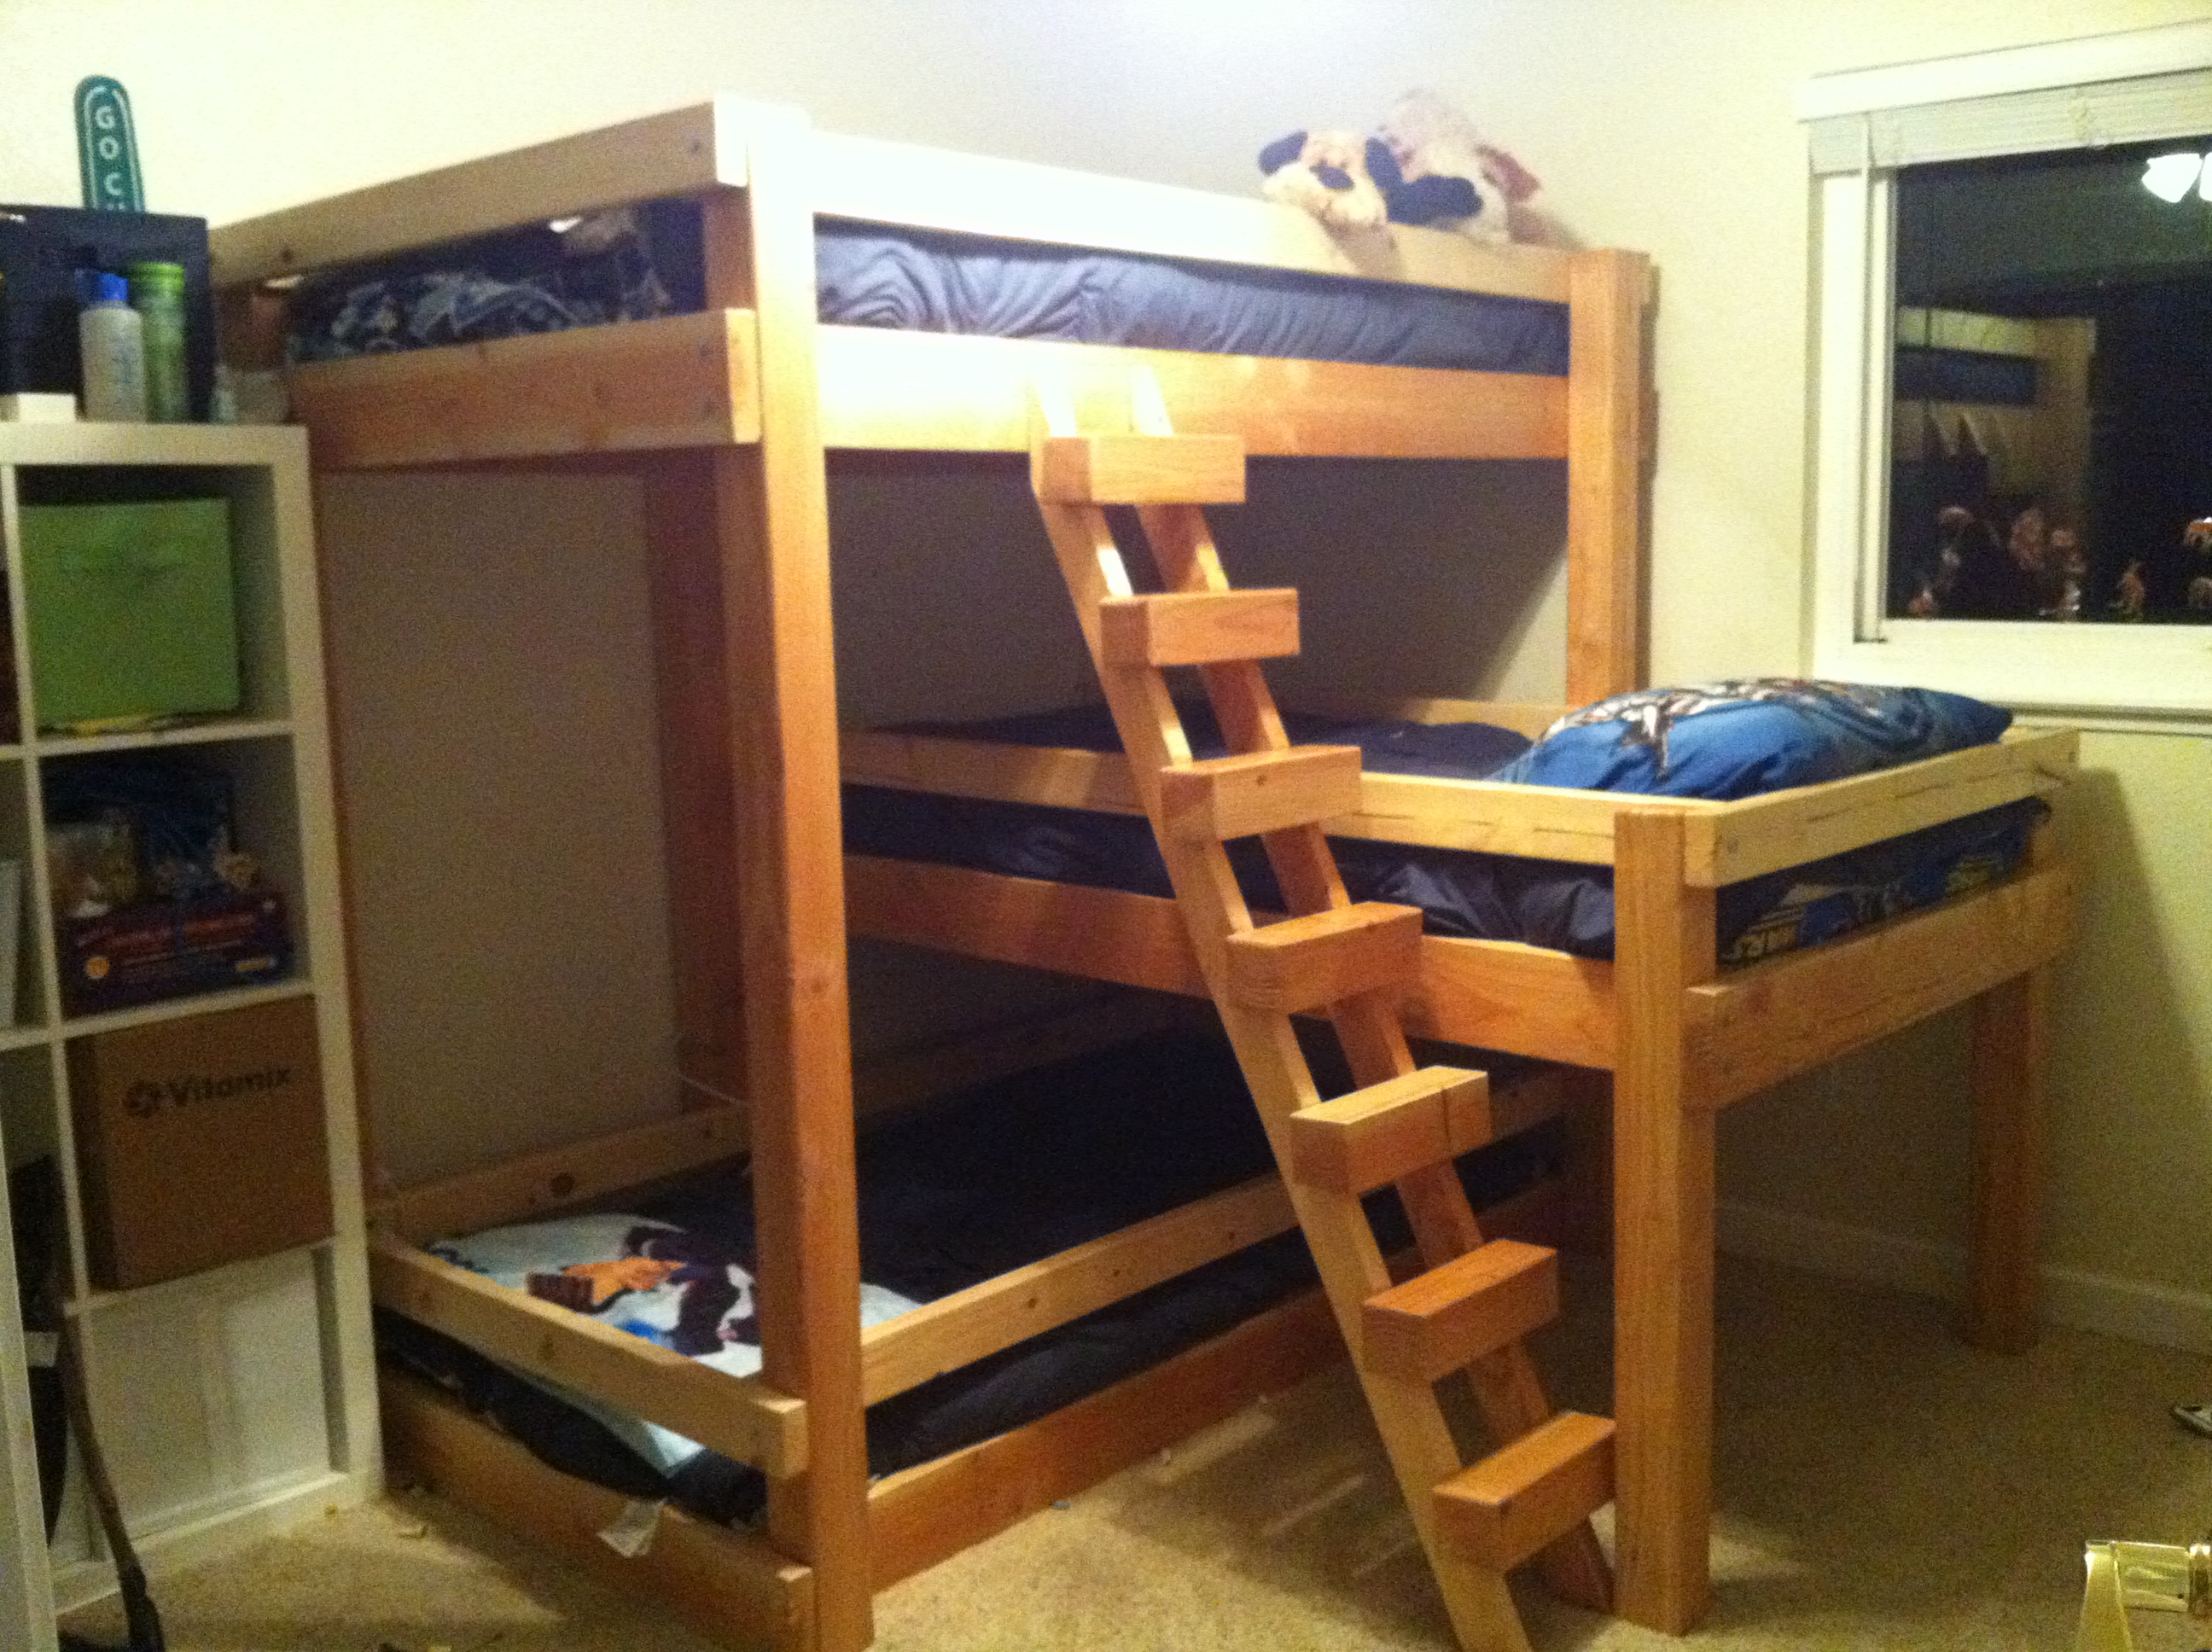 charming wood Bunk Beds With Stairs and blue bedding before the cream wall matched with beige floor for teen bedroom decor ideas